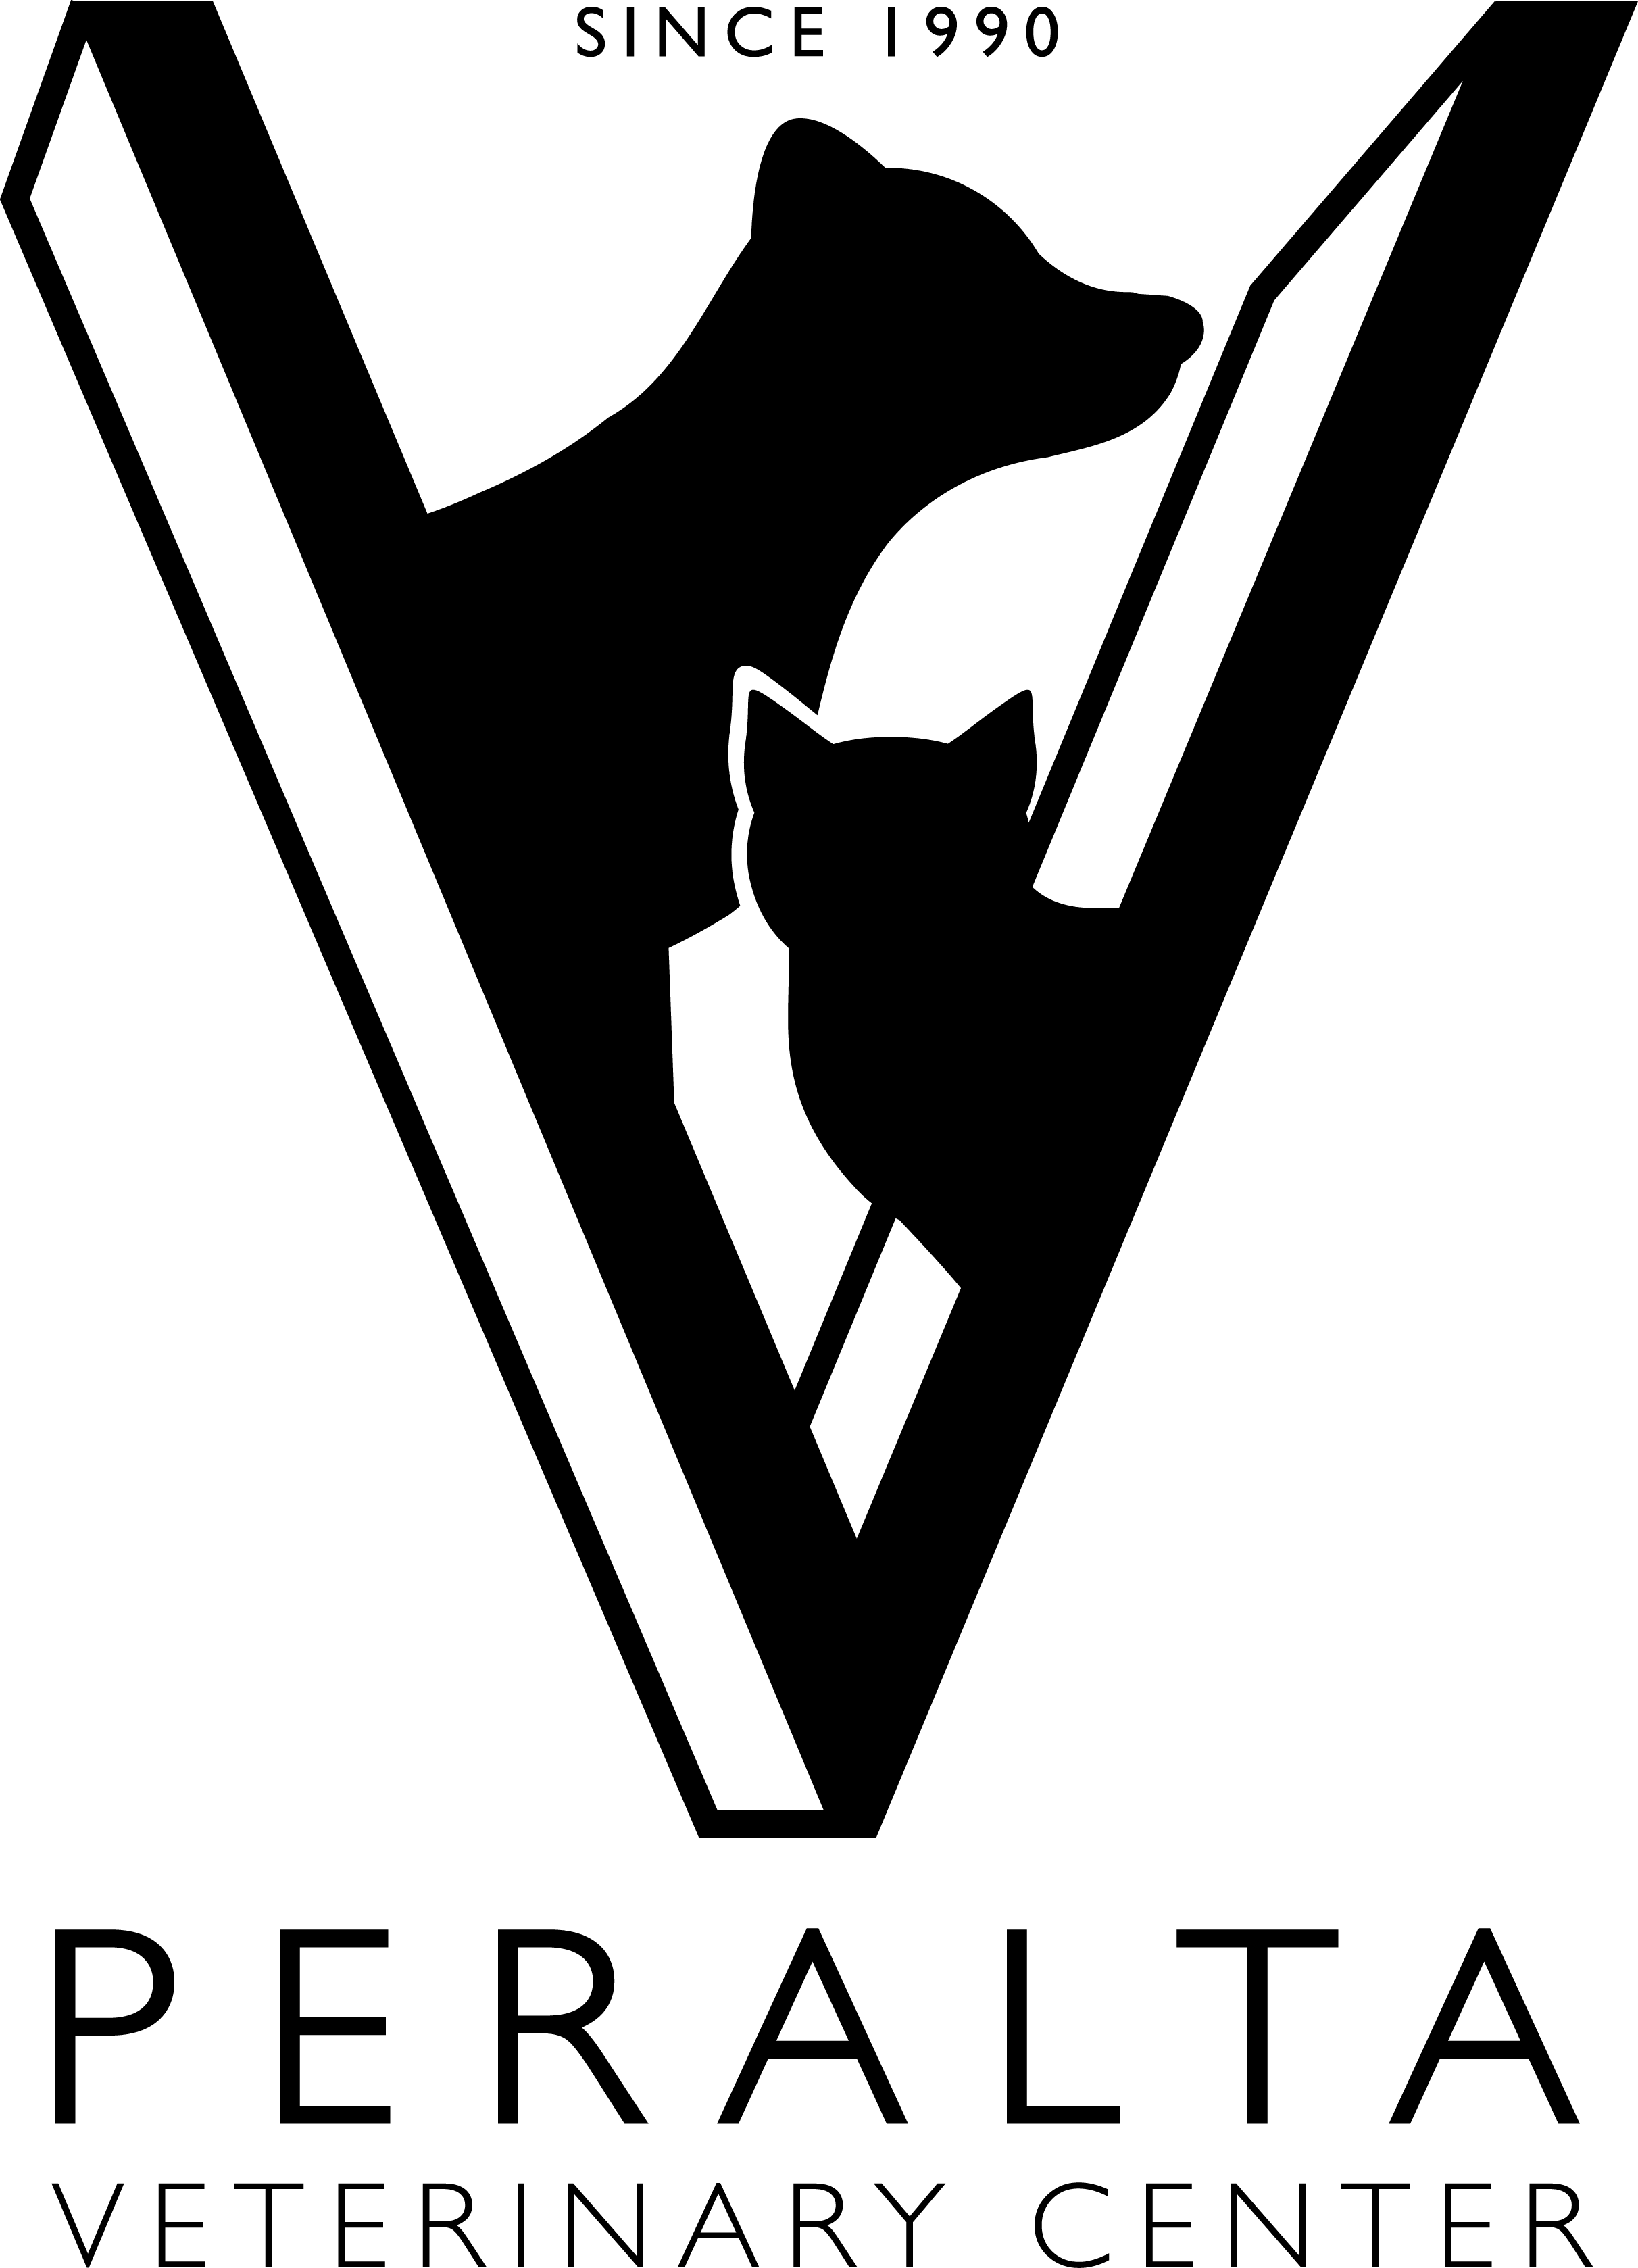 Peralta Veterinary Center